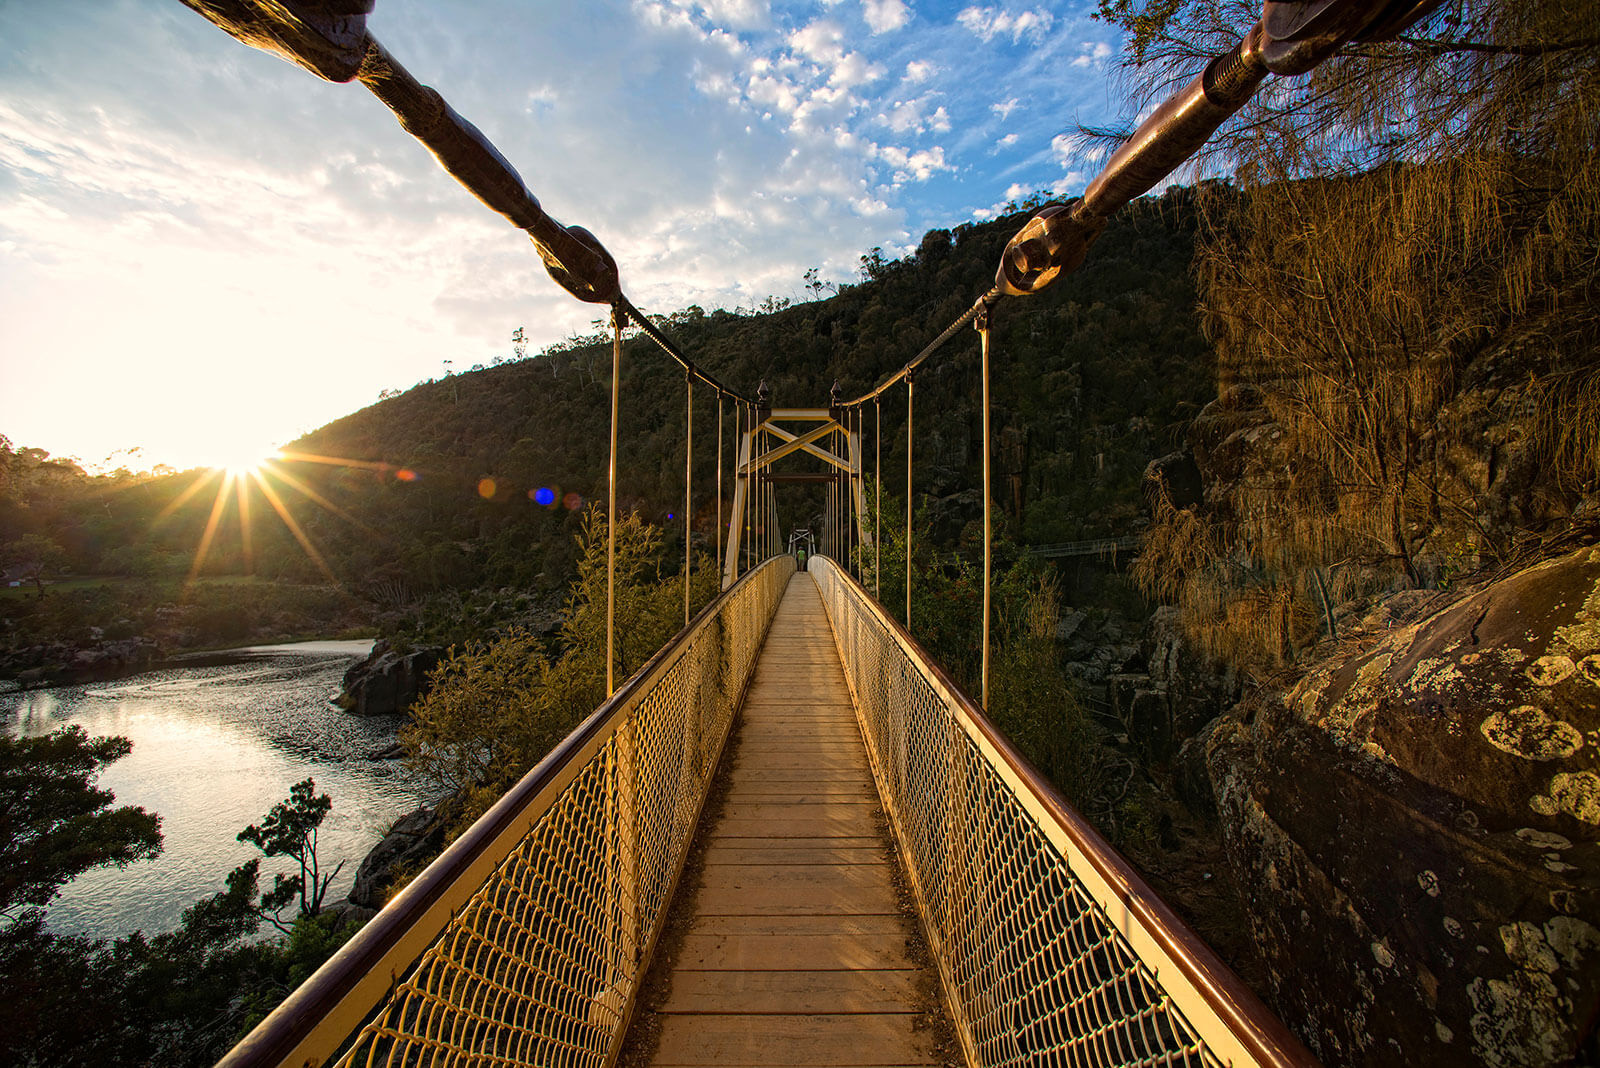 Suspension bridge, Cataract Gorge